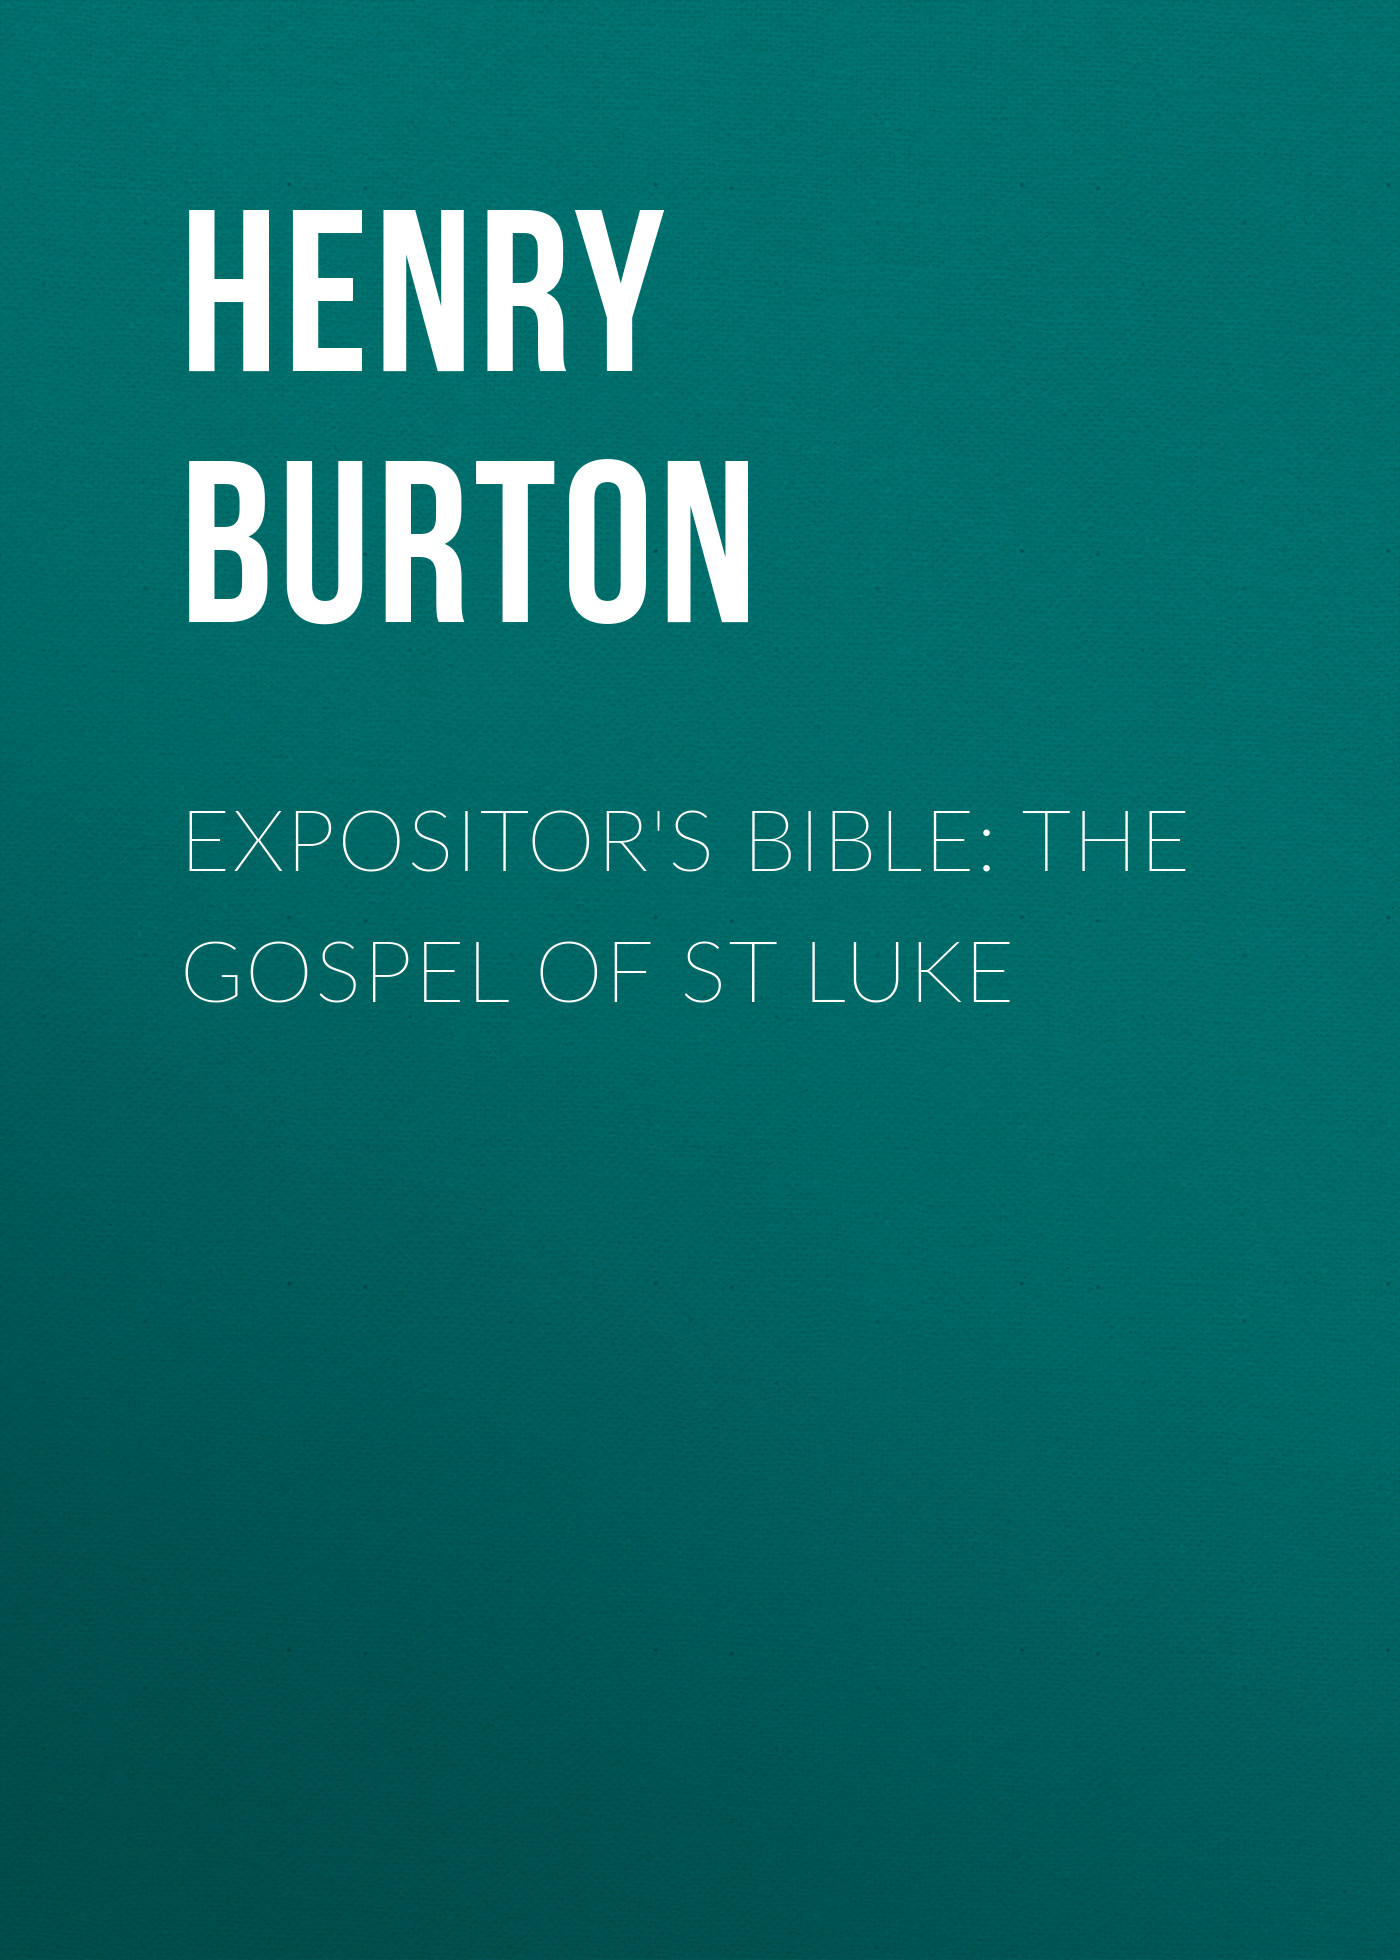 Henry Burton Expositor's Bible: The Gospel of St Luke bennett william henry the expositor s bible the books of chronicles